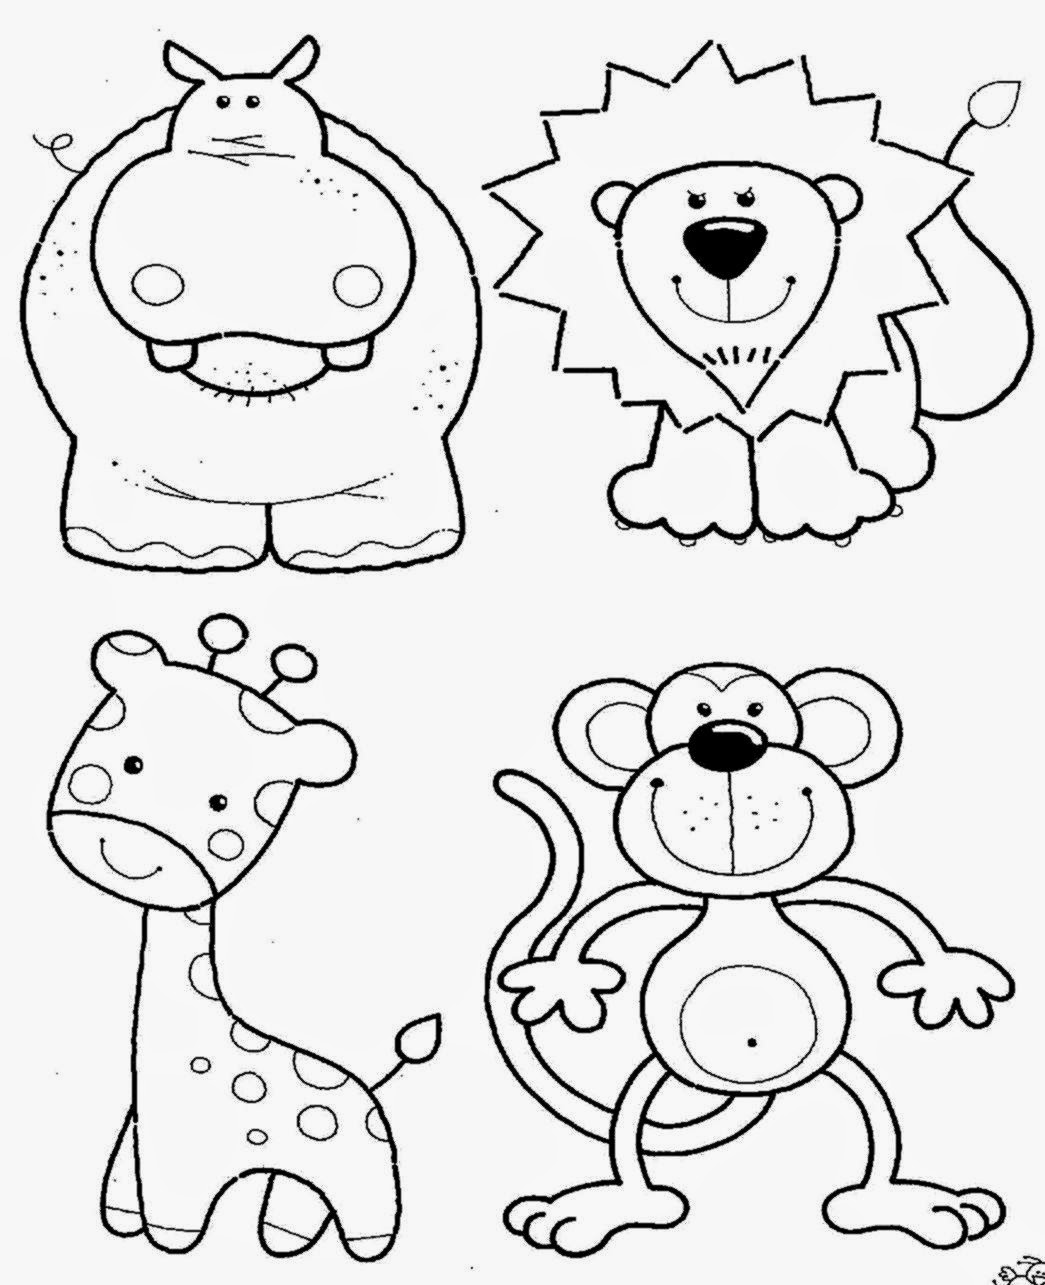 Free Animal Coloring Pages Kids  Printable Coloring Pages